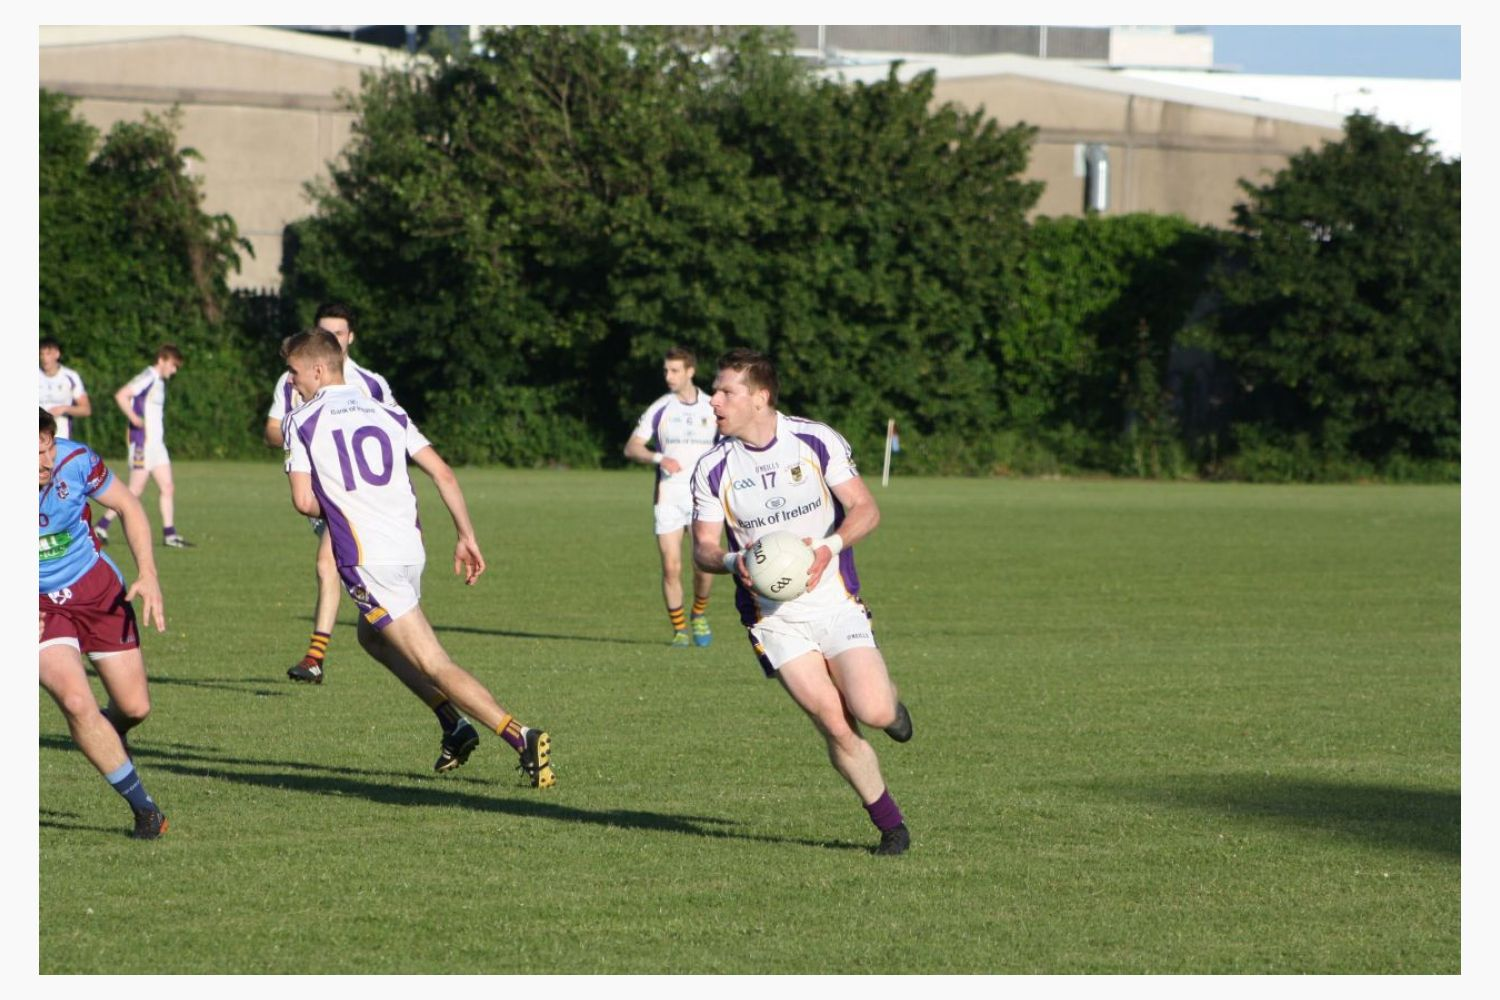 AFL1 League Game Kilmacud Crokes V Olaf's